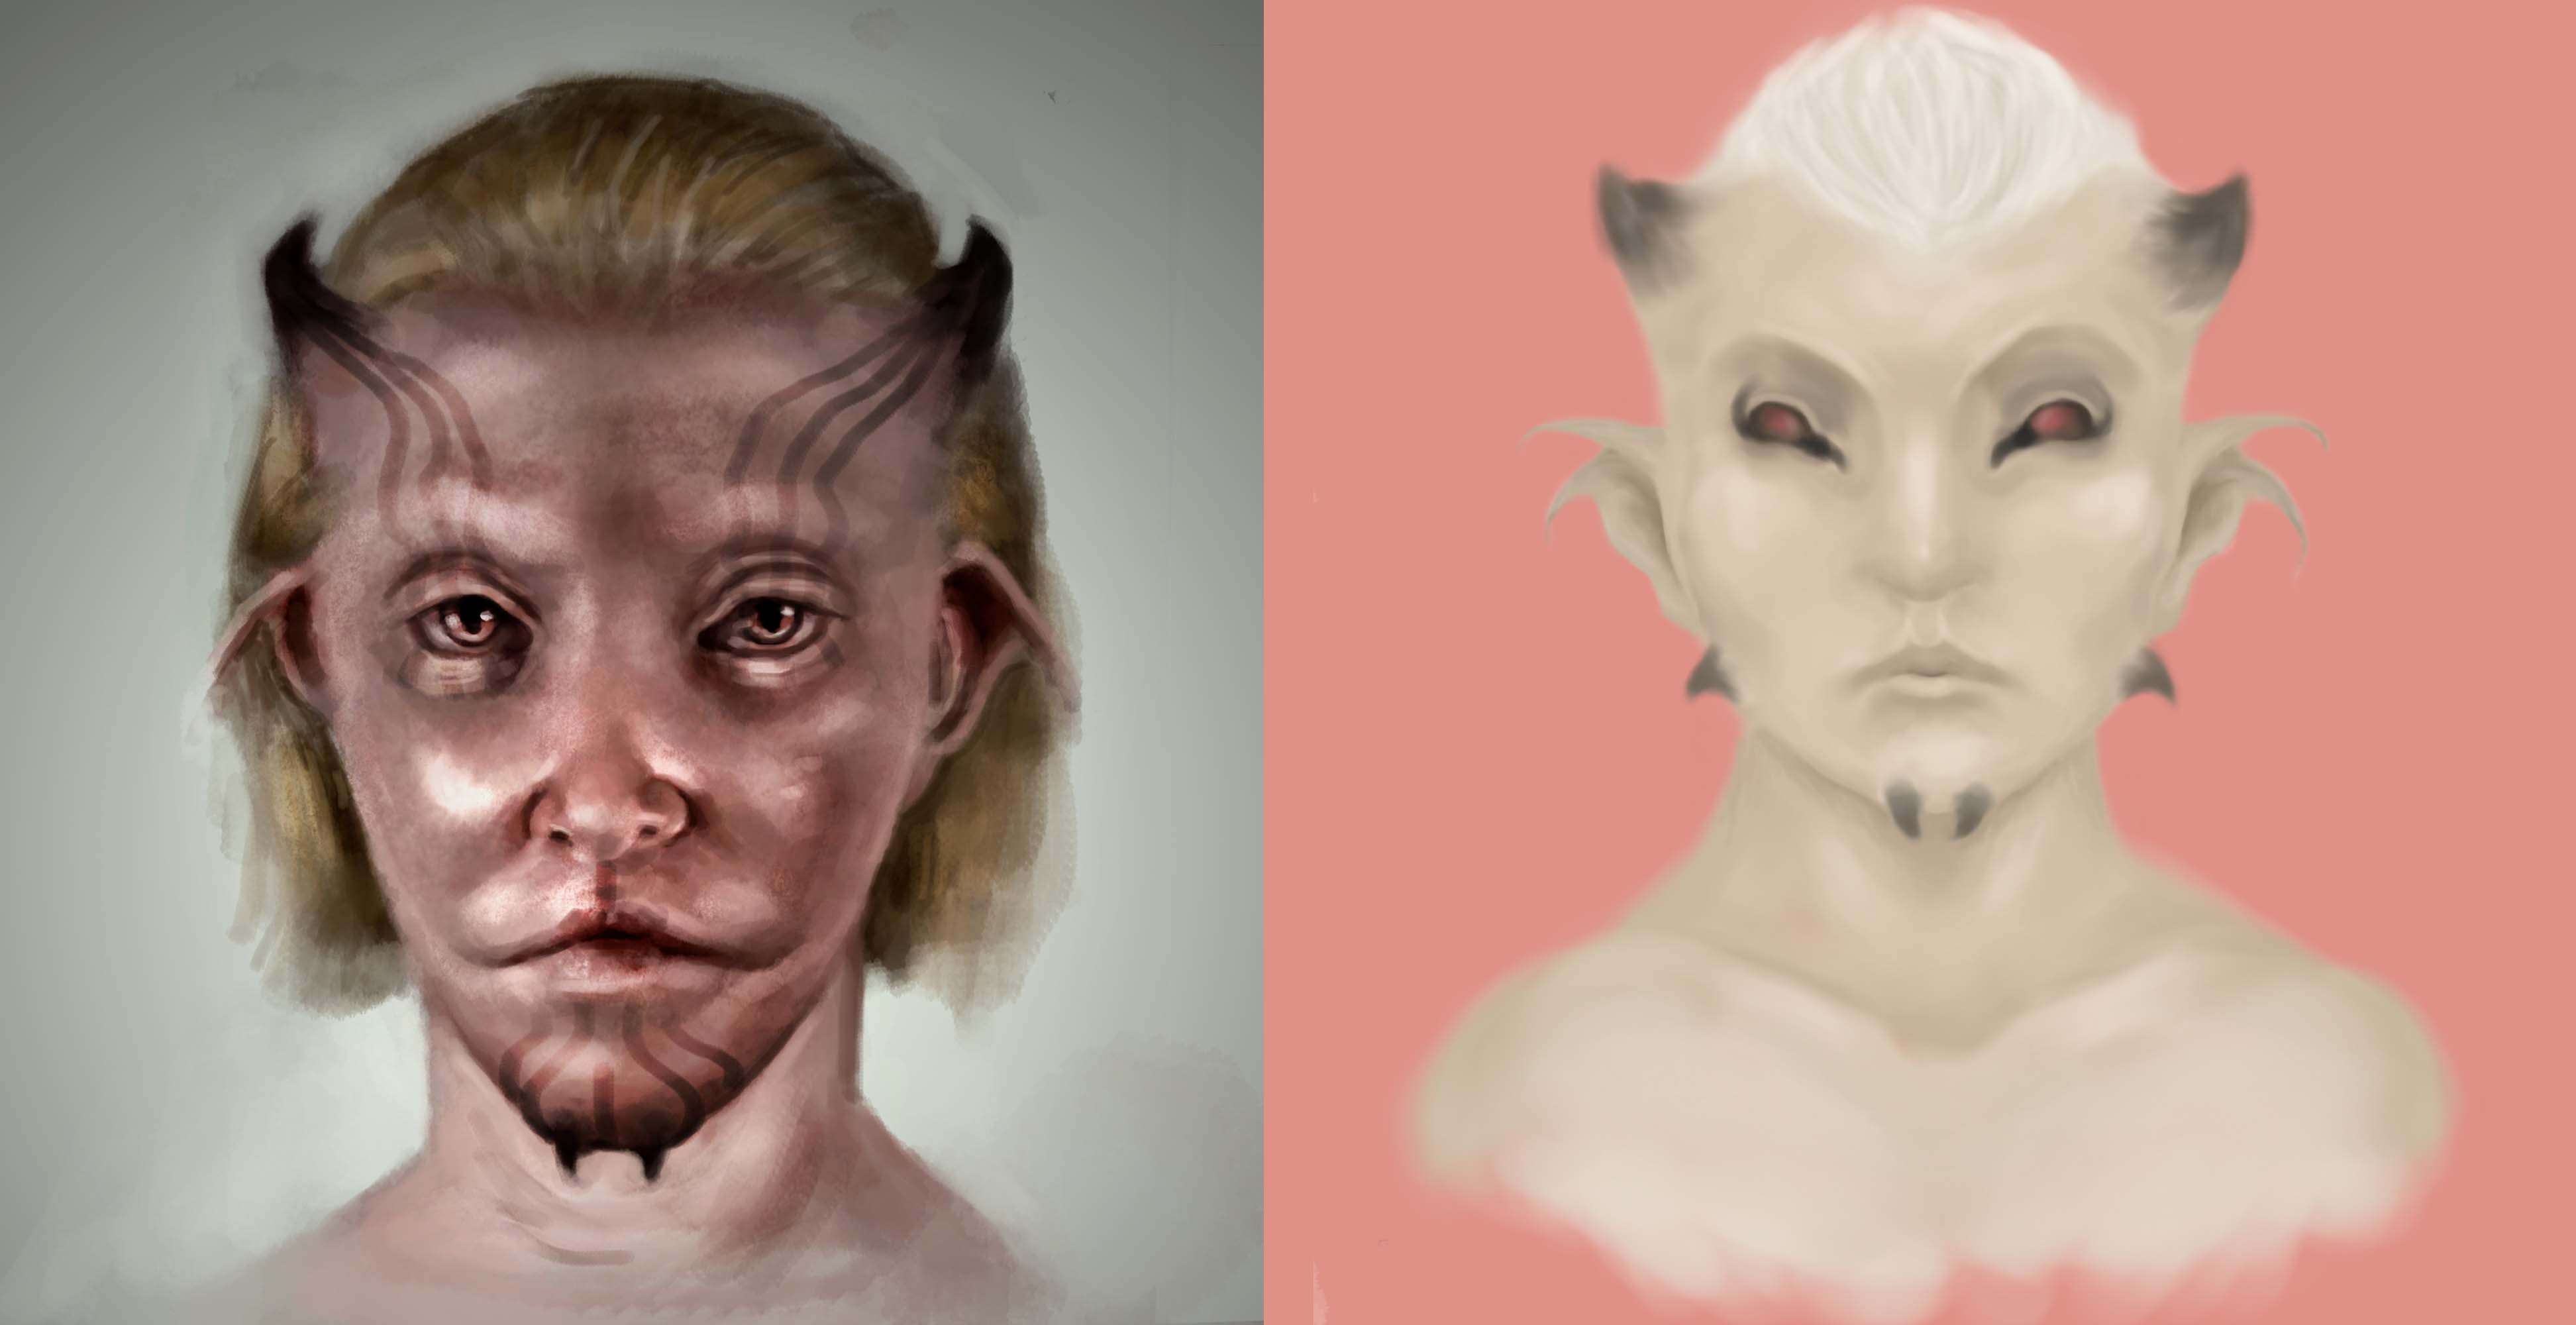 Goat face ( old and new)